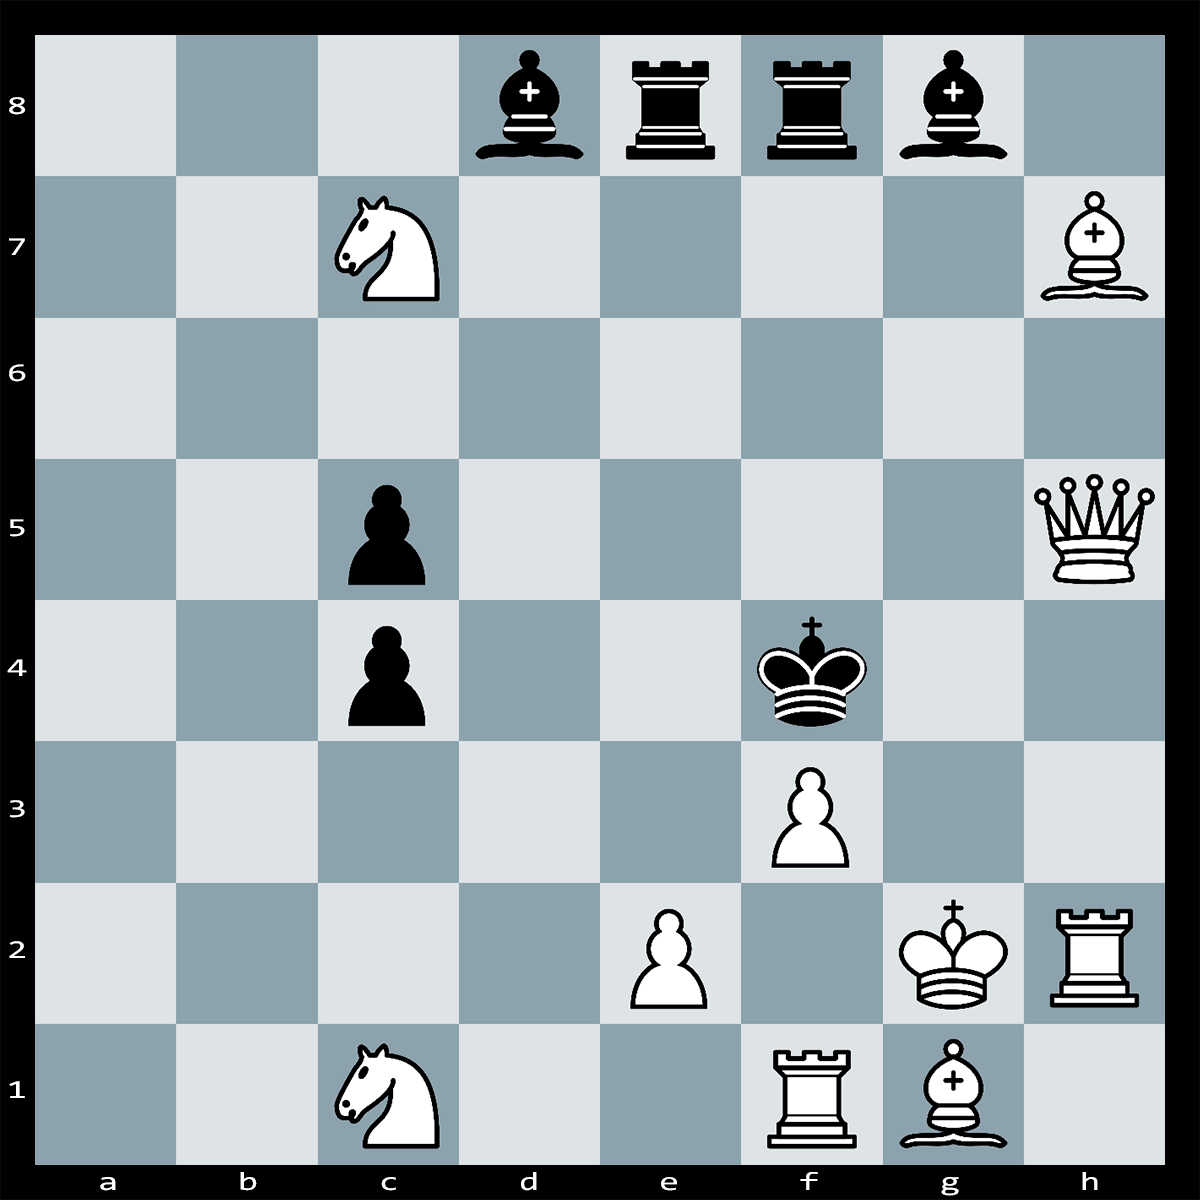 Mate in 2 Moves, White to Play - Chess Puzzle #25